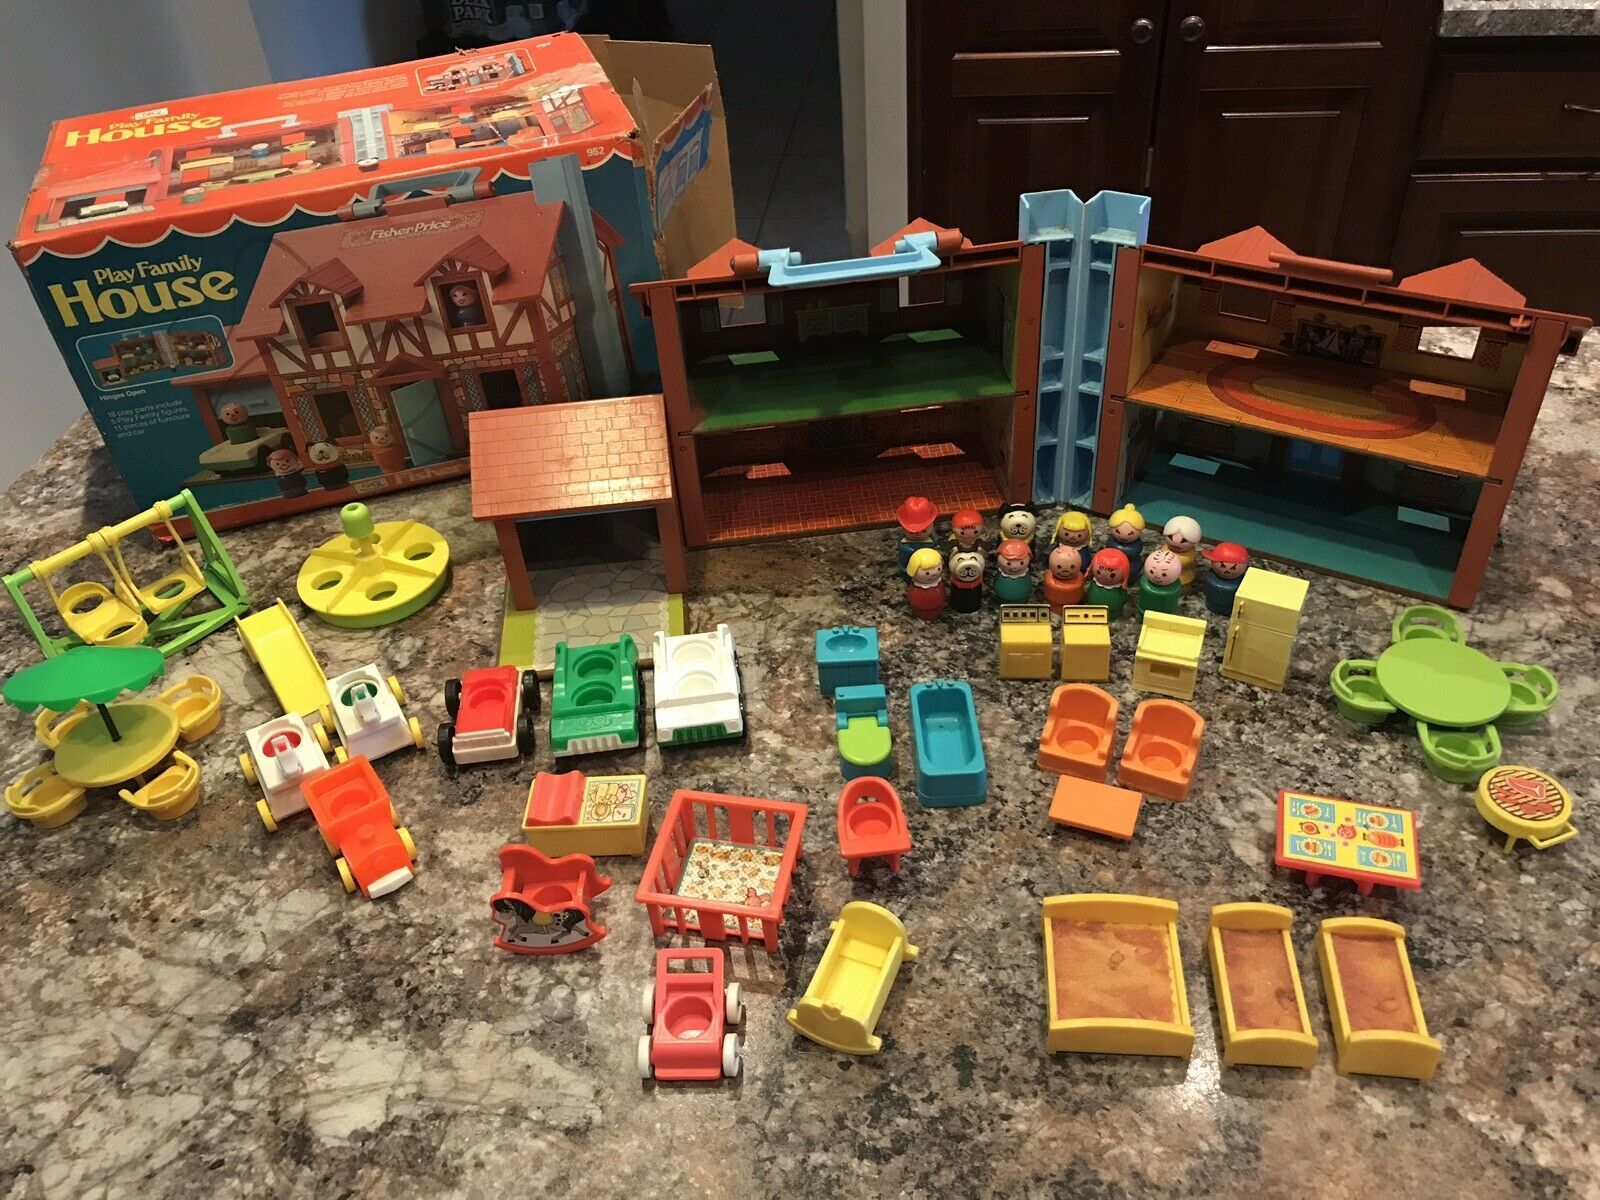 VTG Fisher Price Little People Play Family House TUDOR % COMPLETE W  BOX